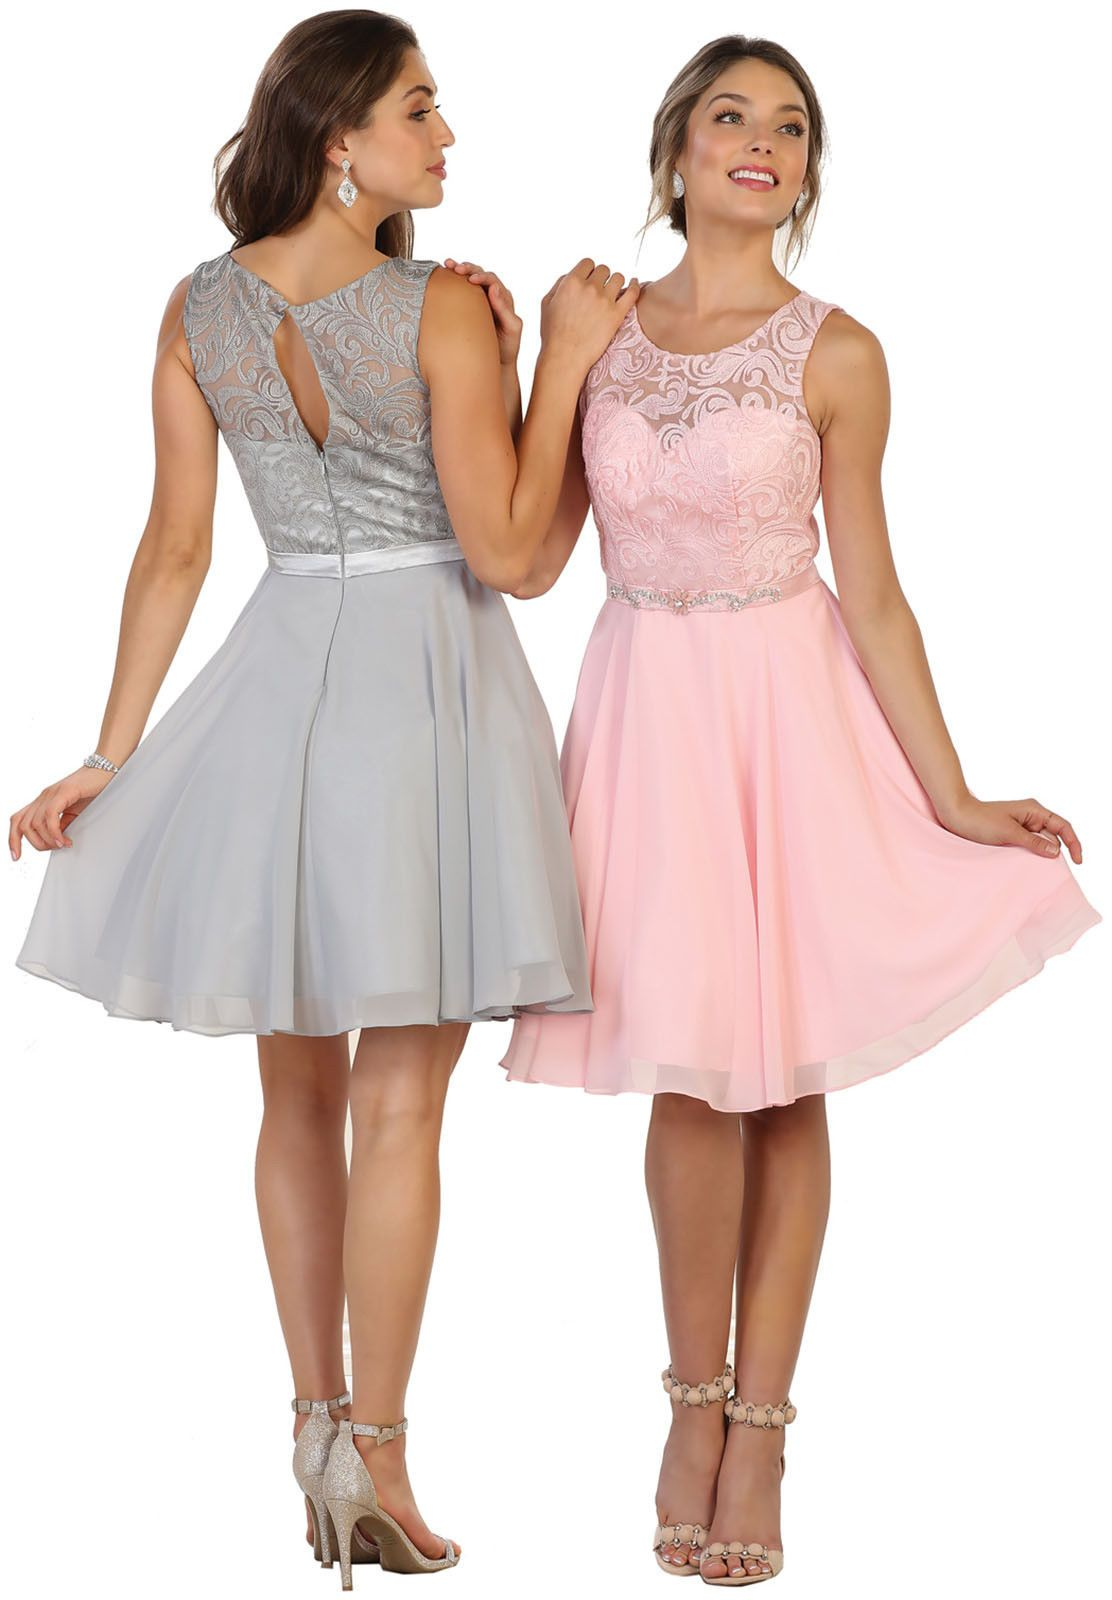 SEMI FORMAL DANCE COCKTAIL GRADUATION HOMECOMING PROM BRIDESMAIDS SHORT  DRESSES  DivaWear d332b6218